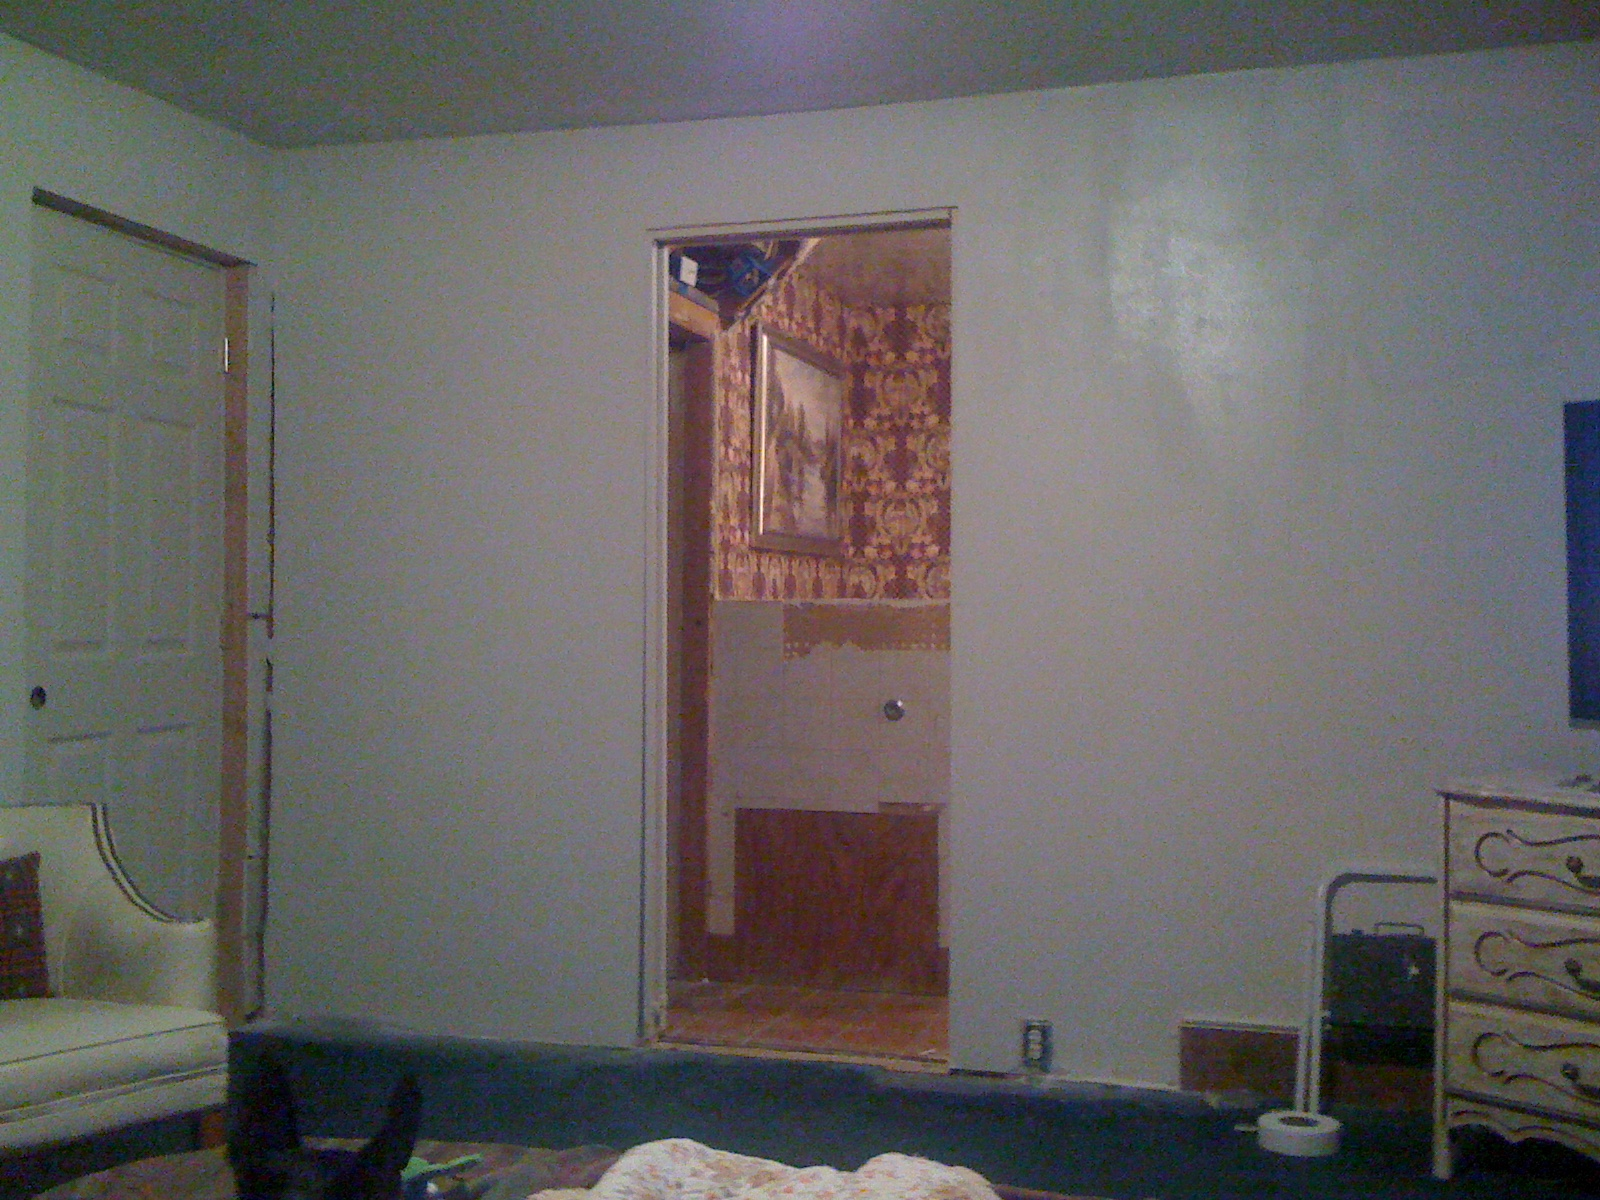 New pocket door entrance to master bath. This wall used to be closed off. New bedroom entry door to the left.